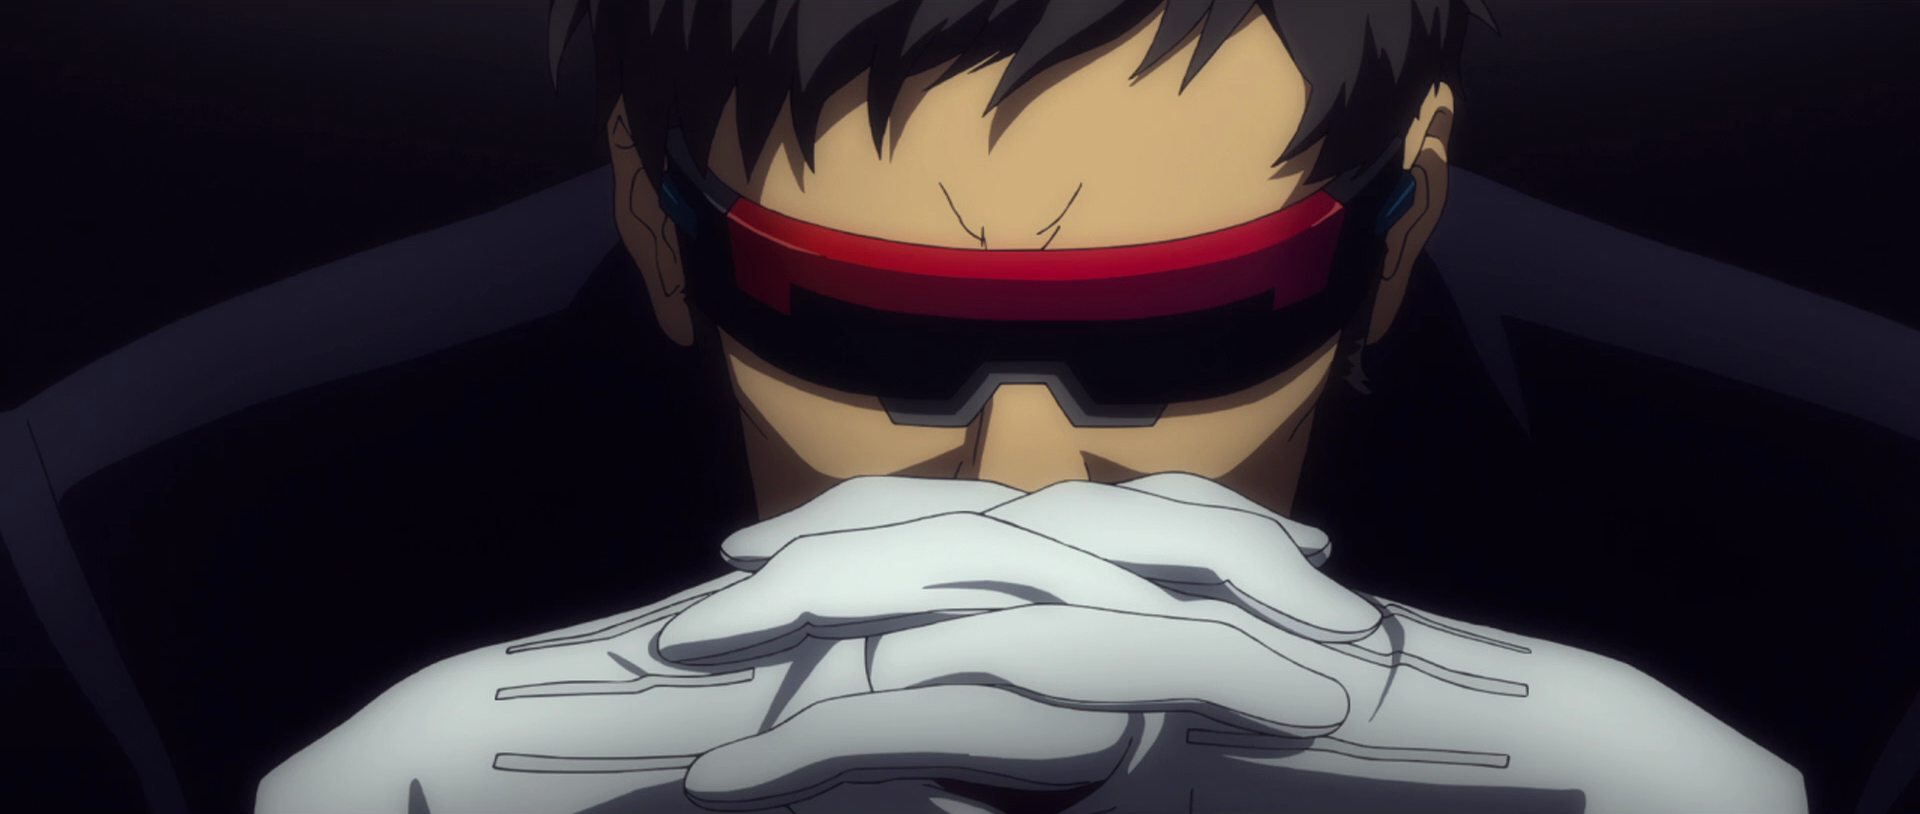 Gendo Ikari after 14 years (Rebuild)